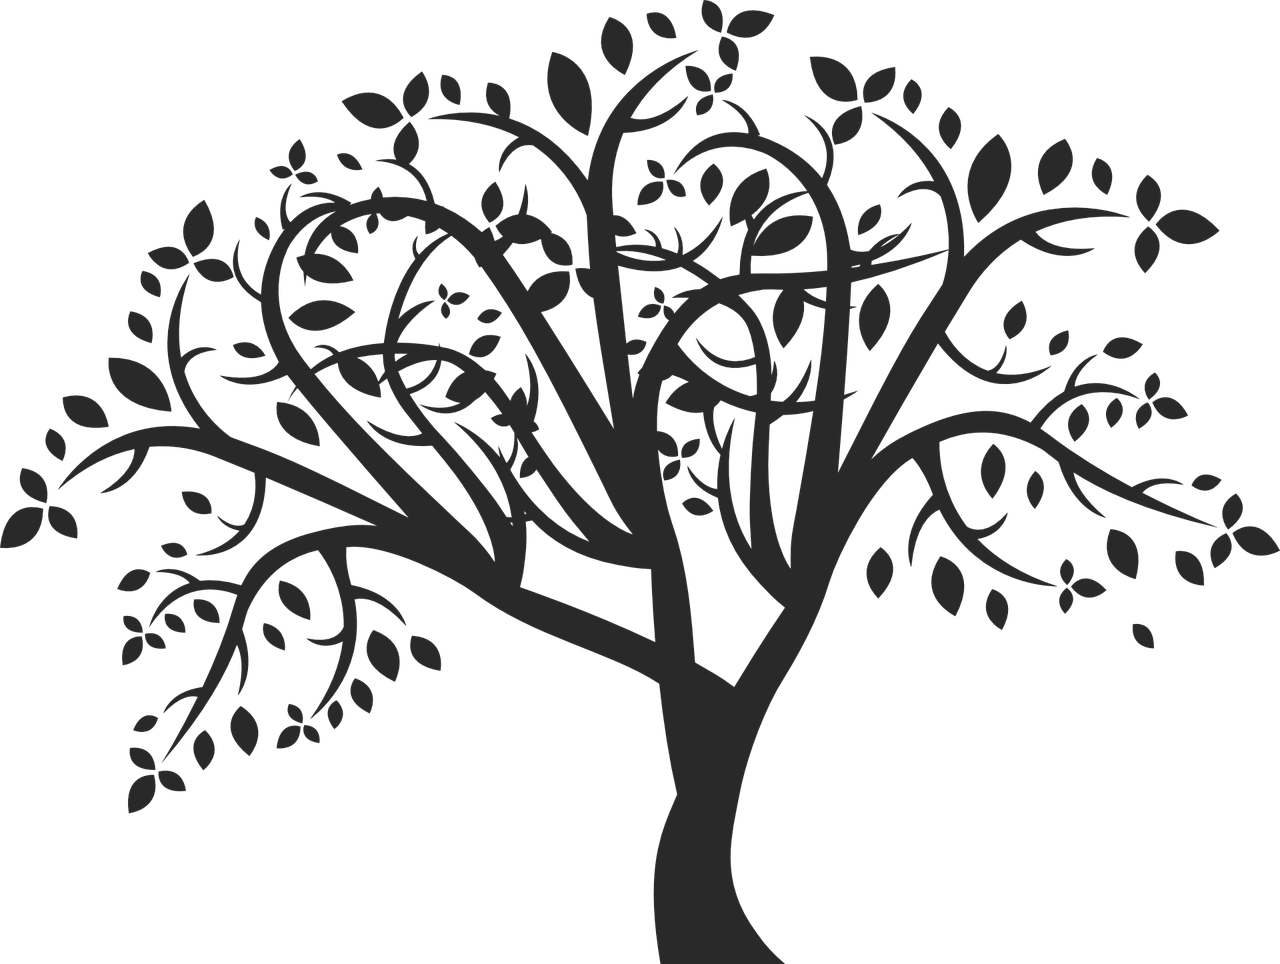 banner royalty free download How to draw a tree